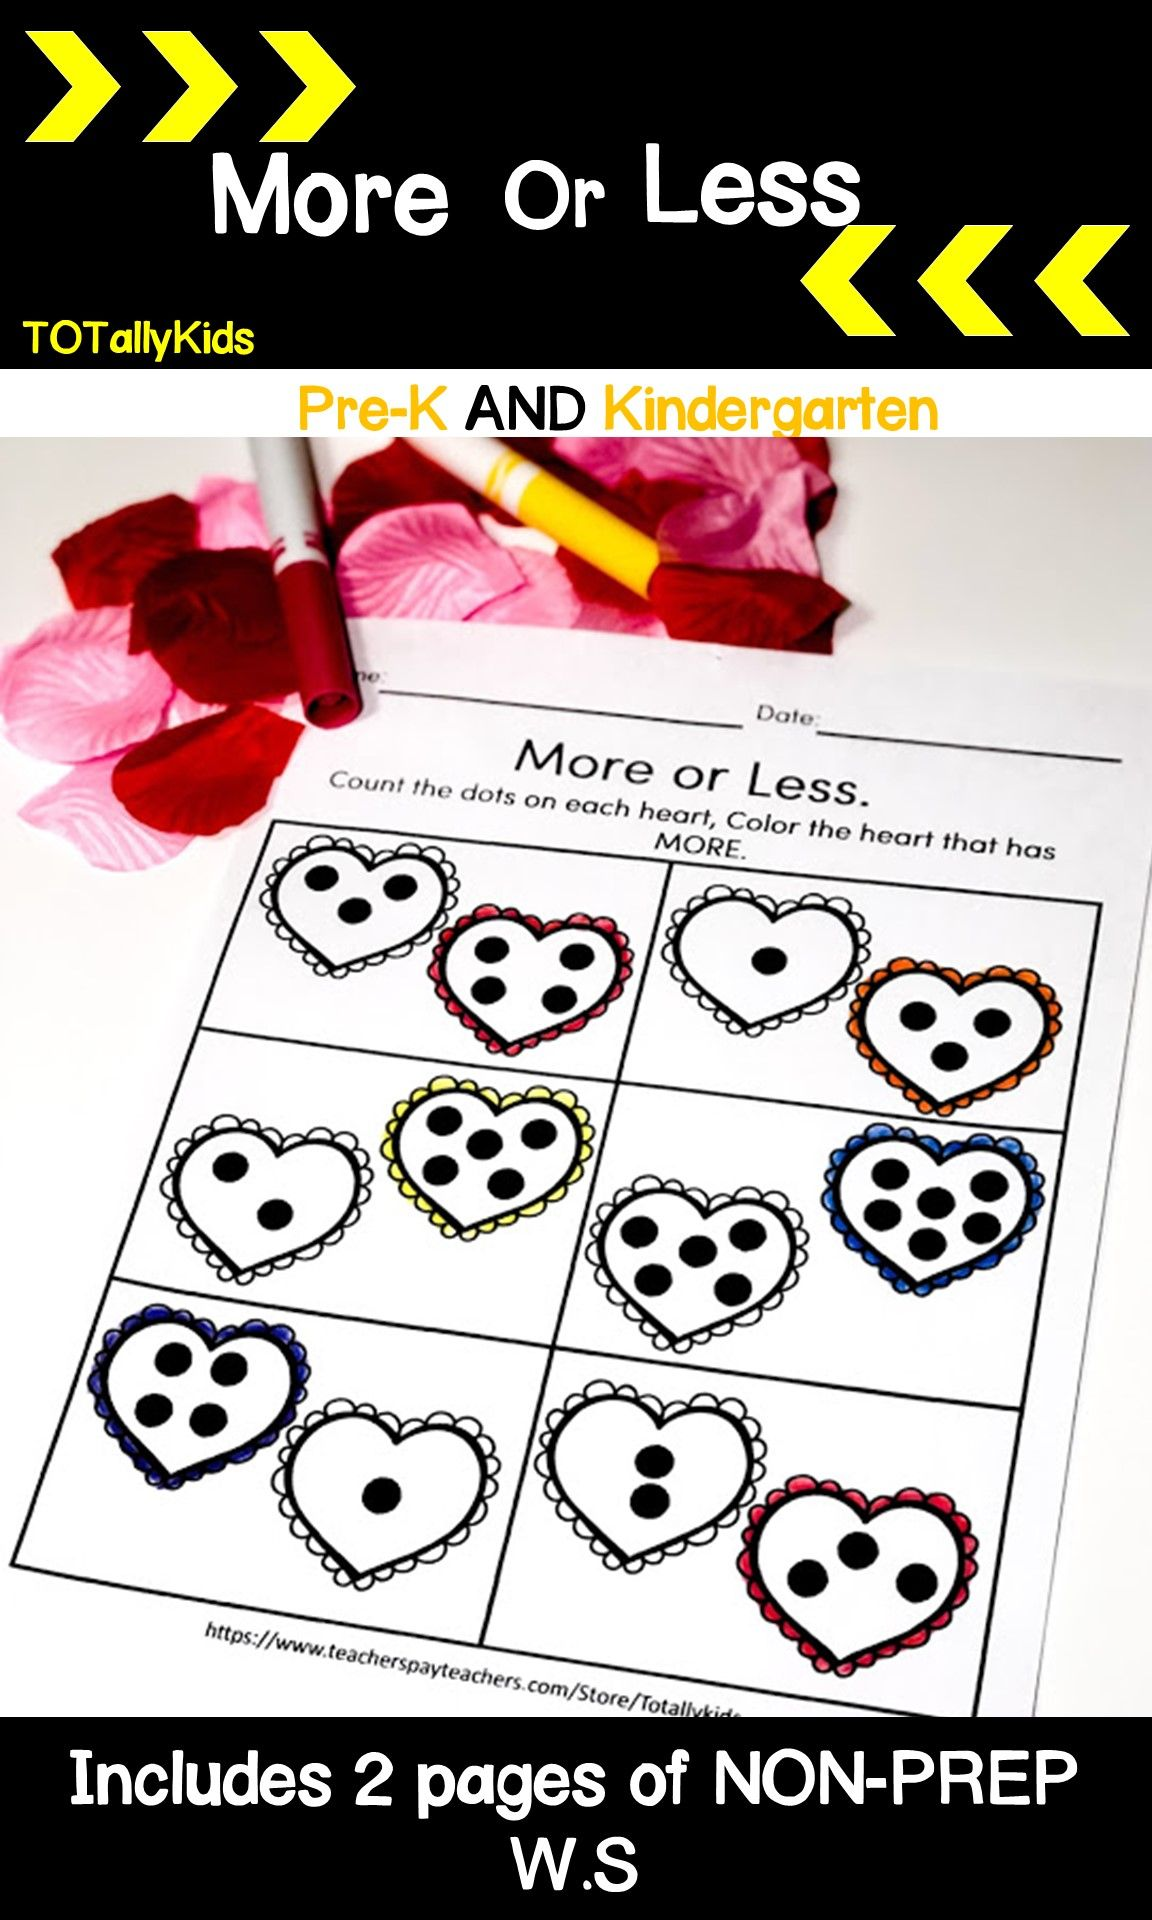 Valentines More Or Less Pre K And Kindergarten B Amp W